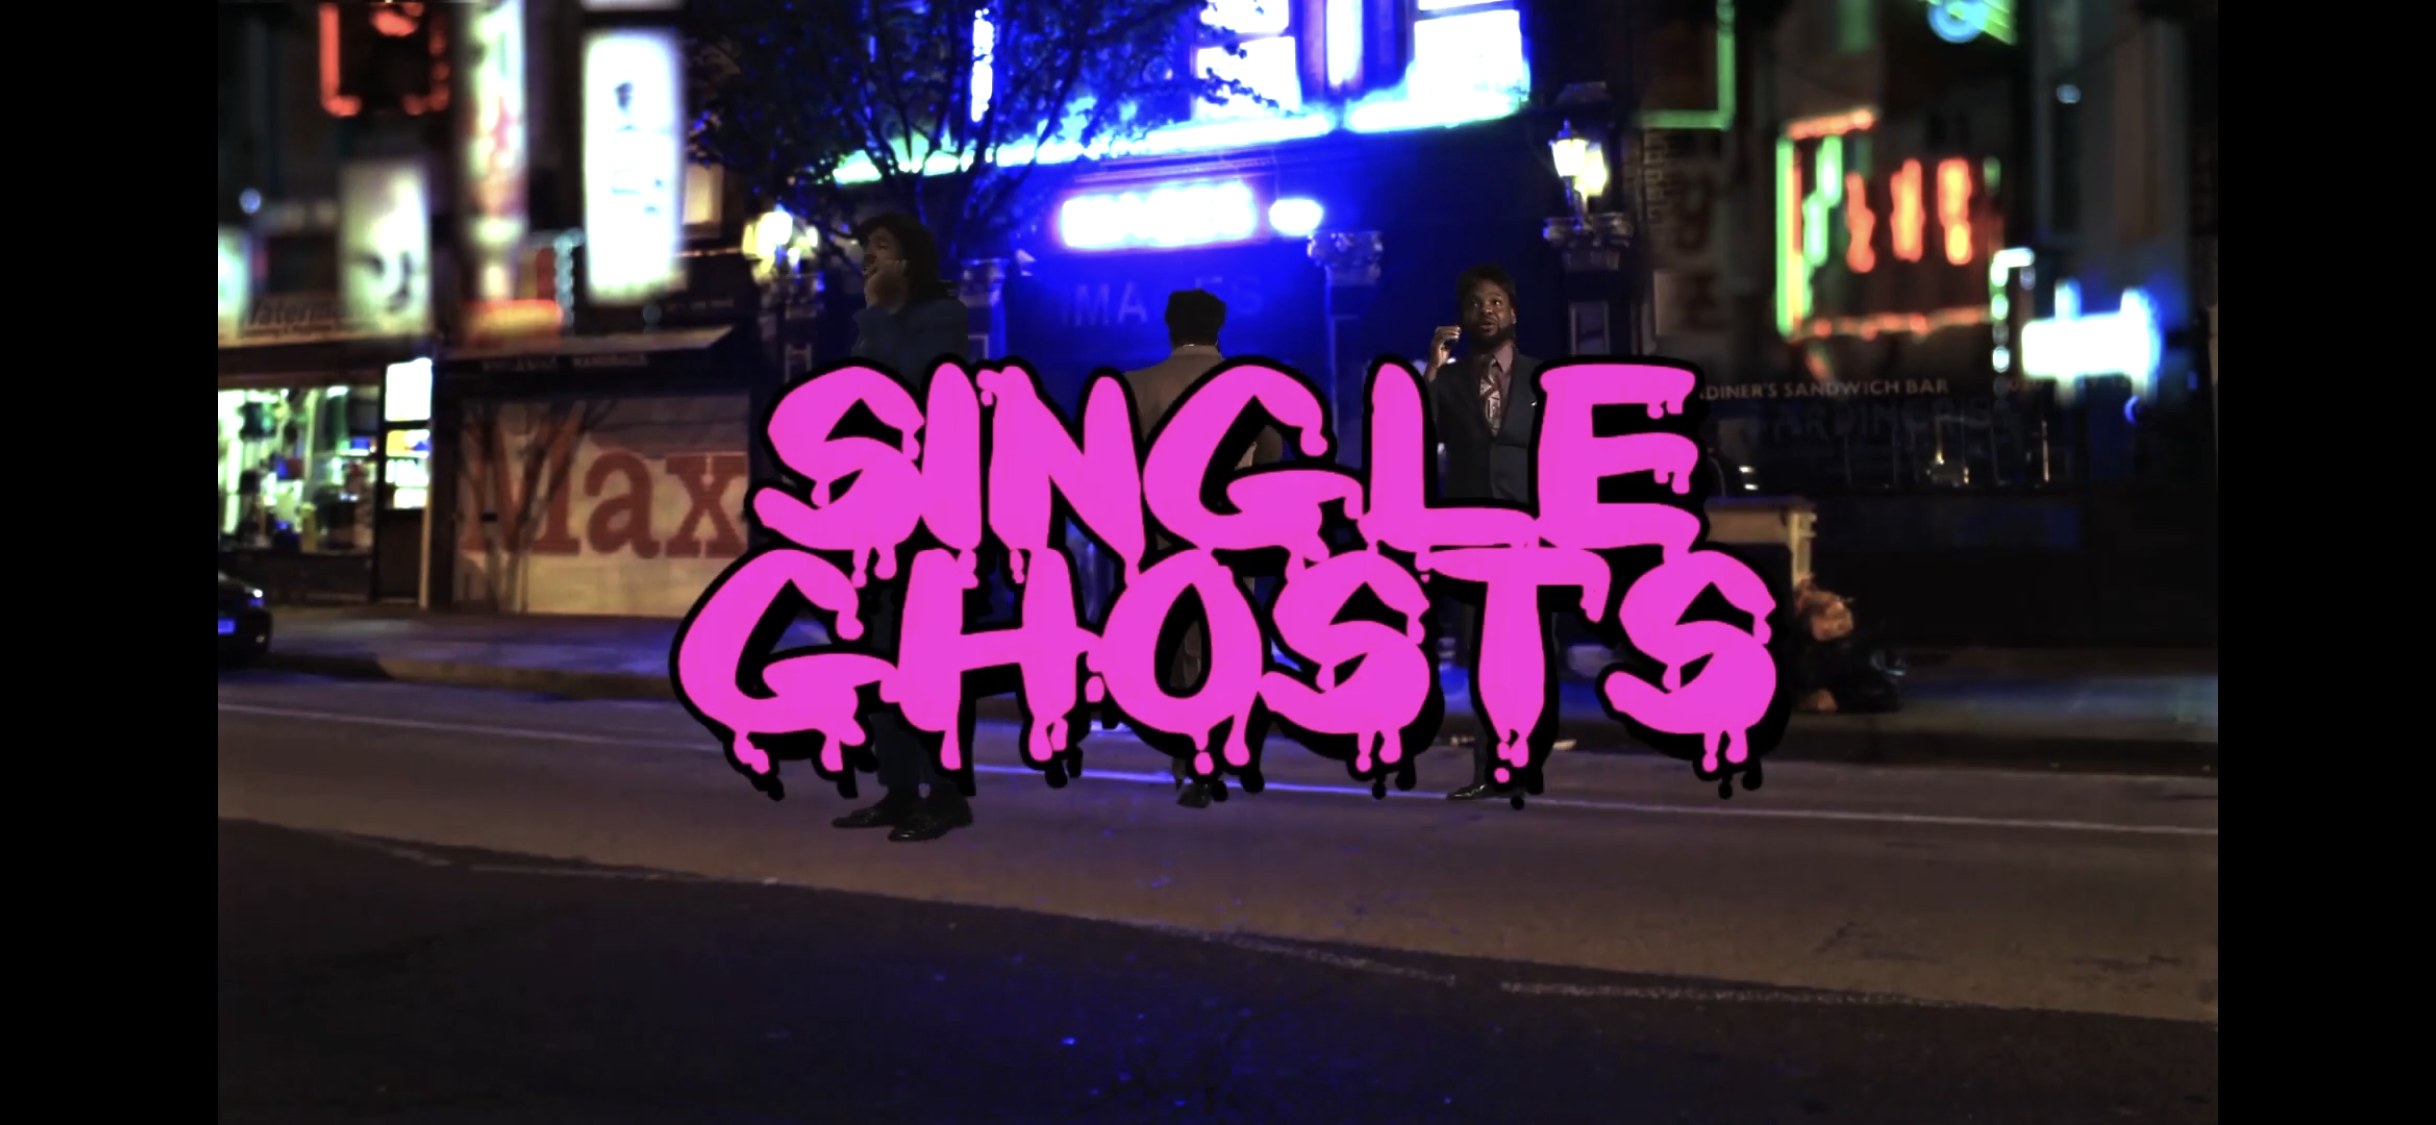 Open Mike Eagle - Single Ghosts official video